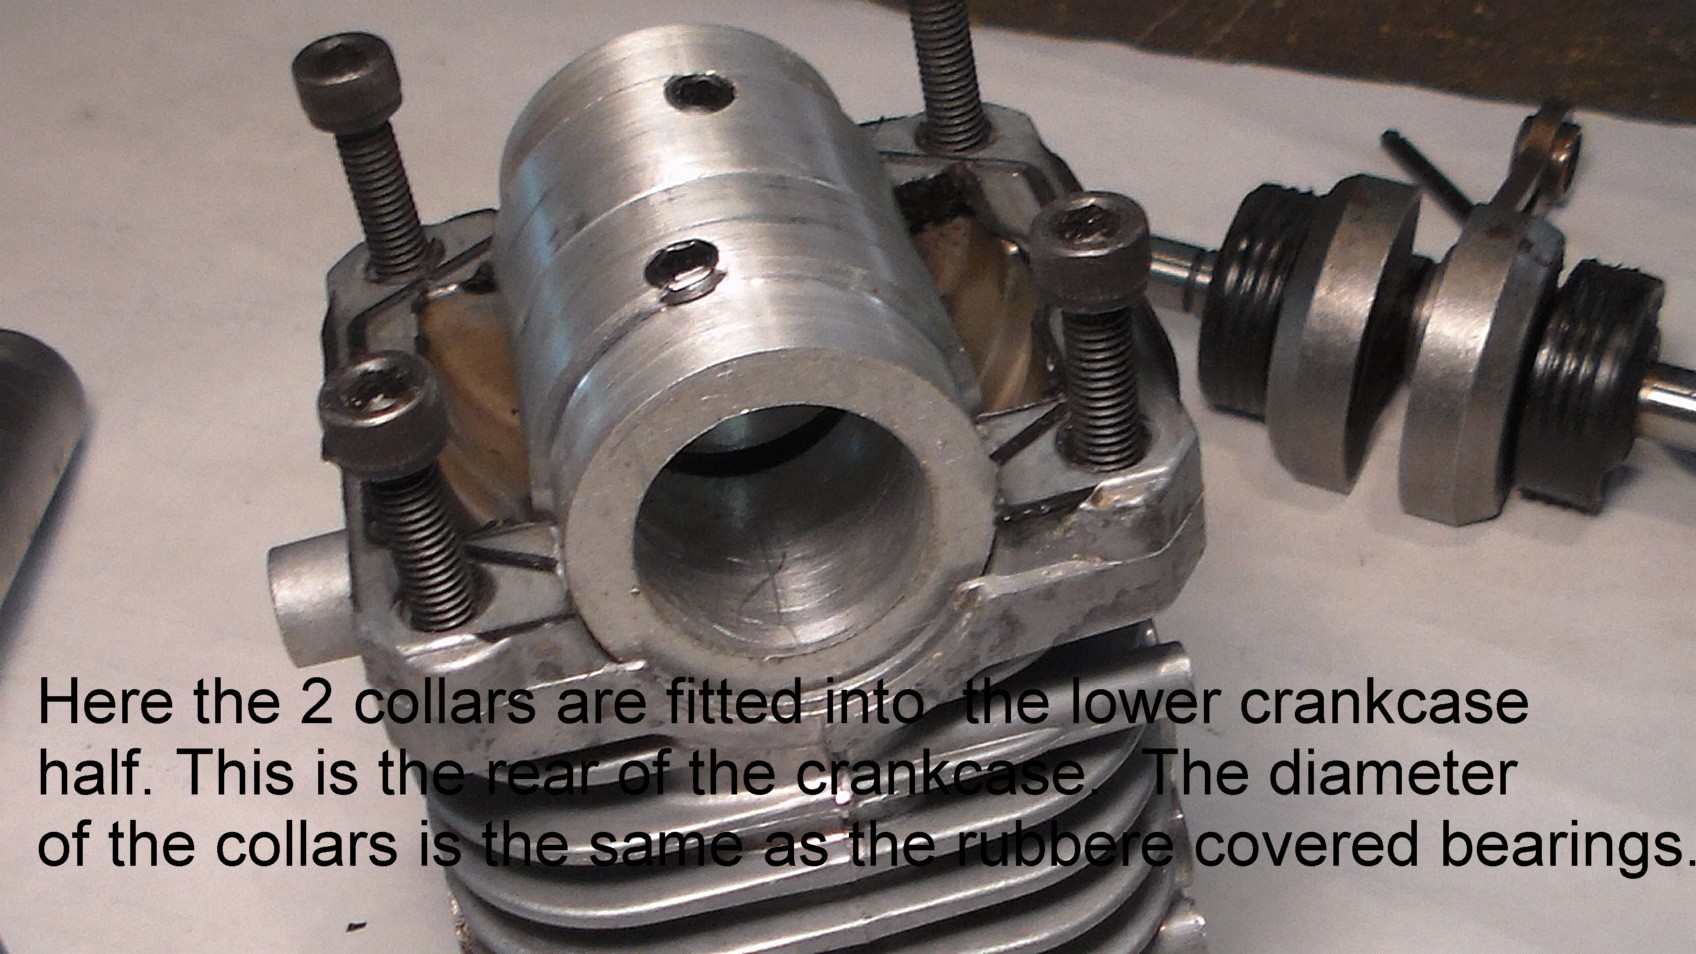 Click image for larger version  Name:Crankcase4.jpg Views:166 Size:358.1 KB ID:2194917